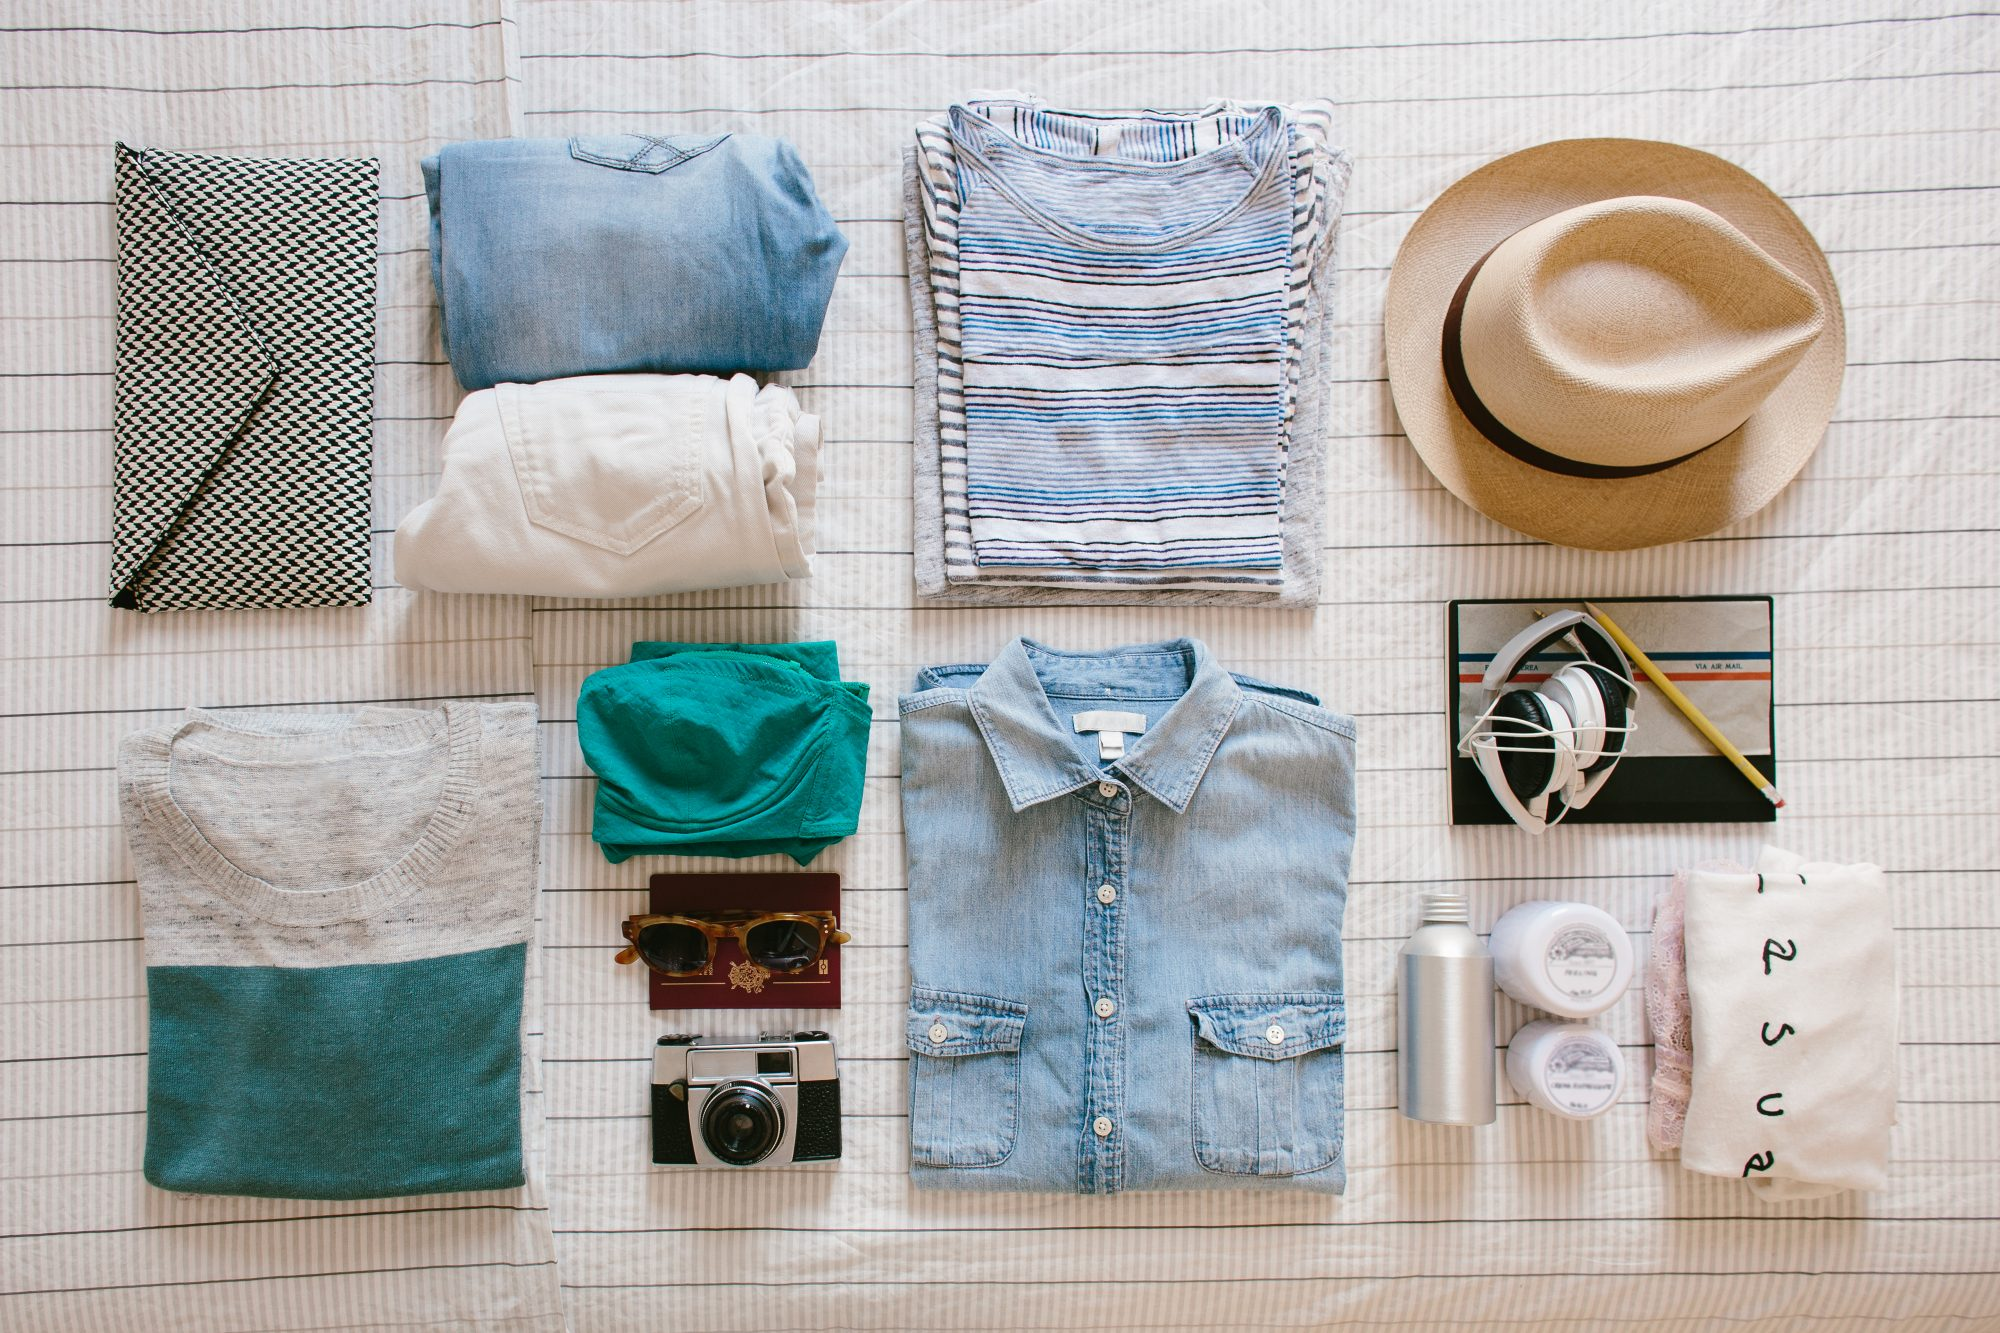 Getty Clothes On Bed Packing Image